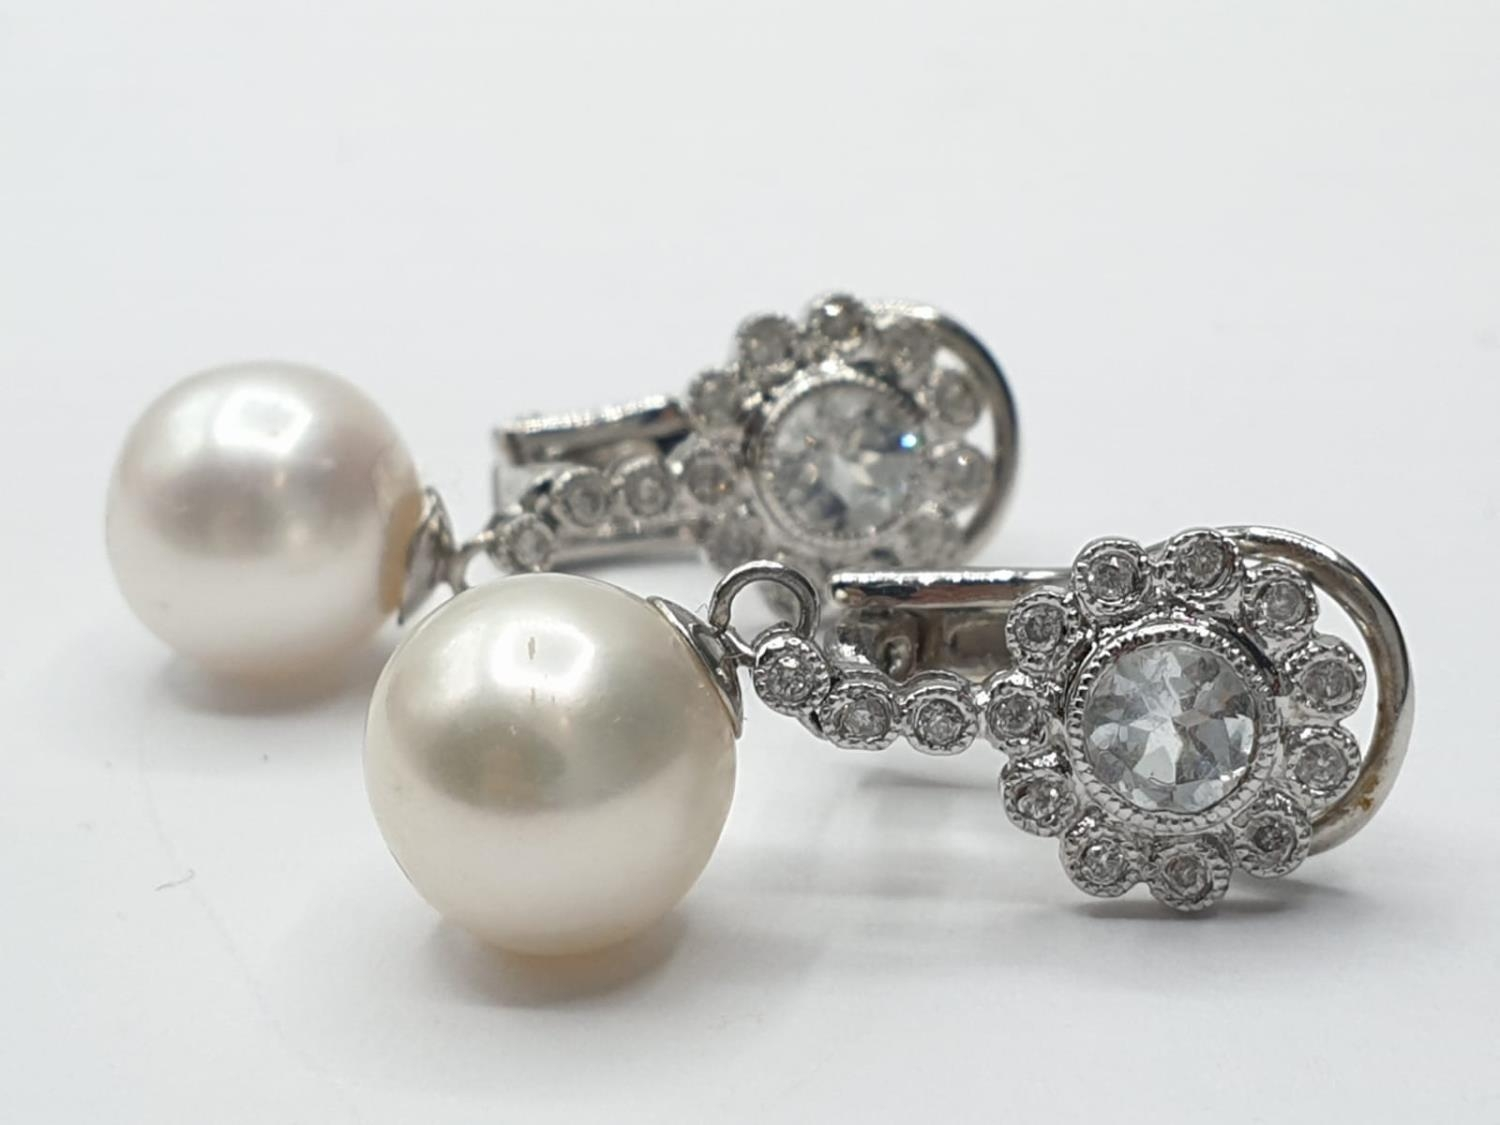 Pair of 18ct gold pearl and white sapphire drop earrings in floral design, weight 6g and 2.5cm